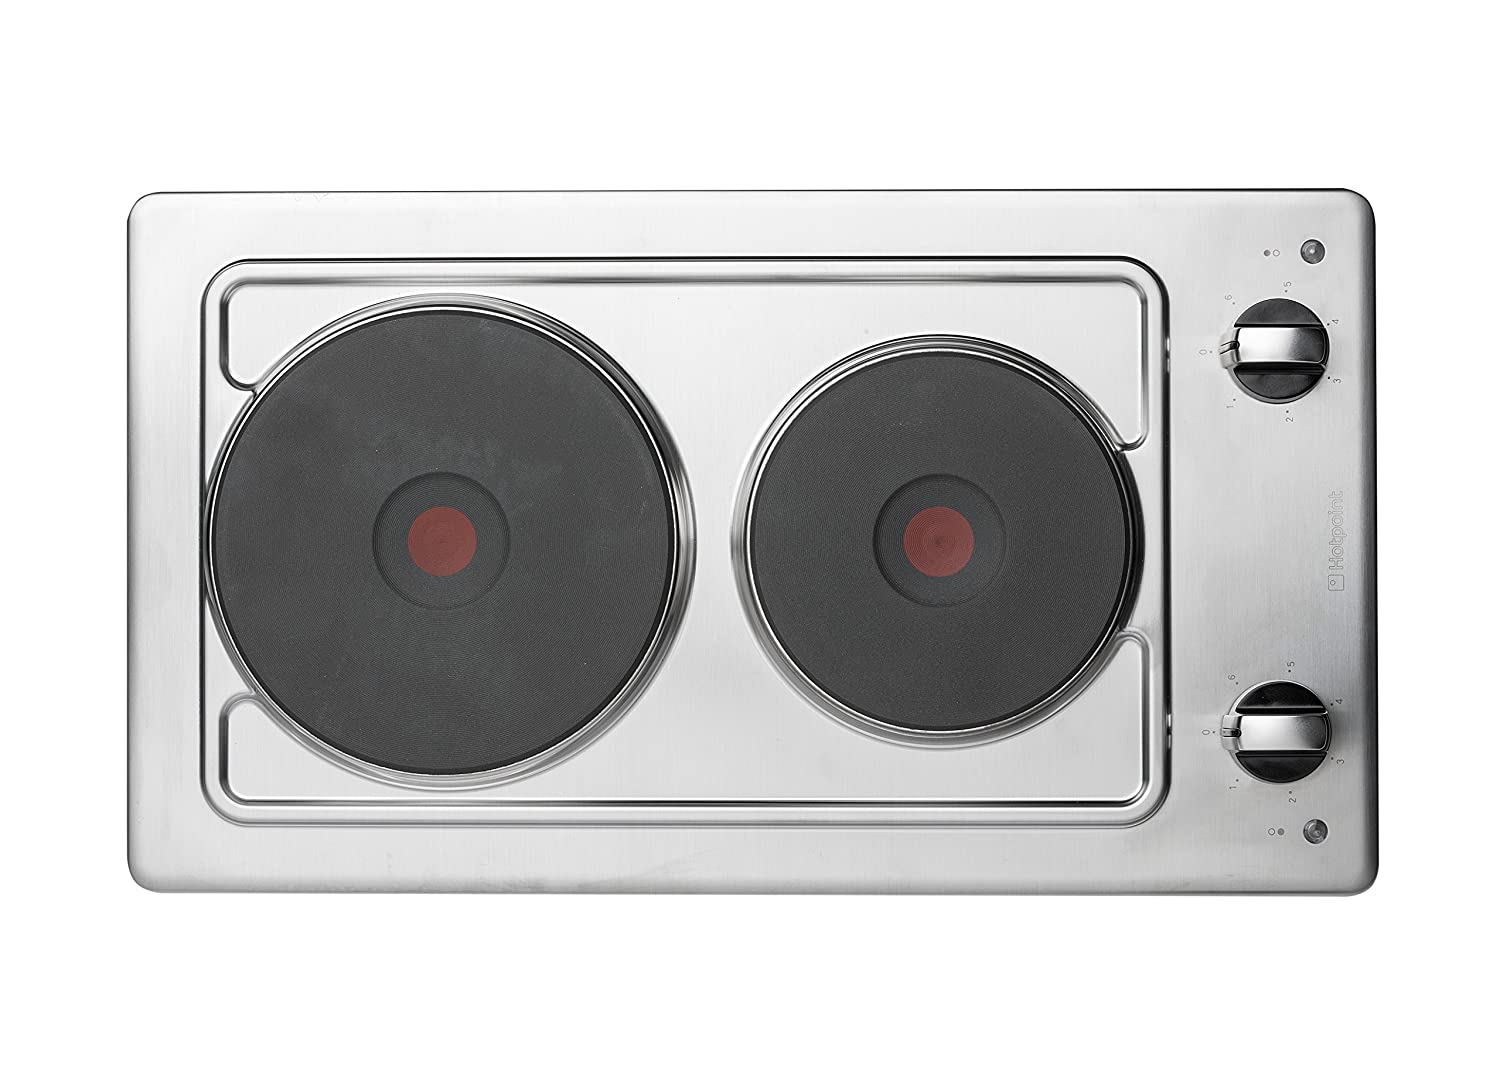 Hotpoint First Edition E320SKIX Built-in Hob - Stainless Steel